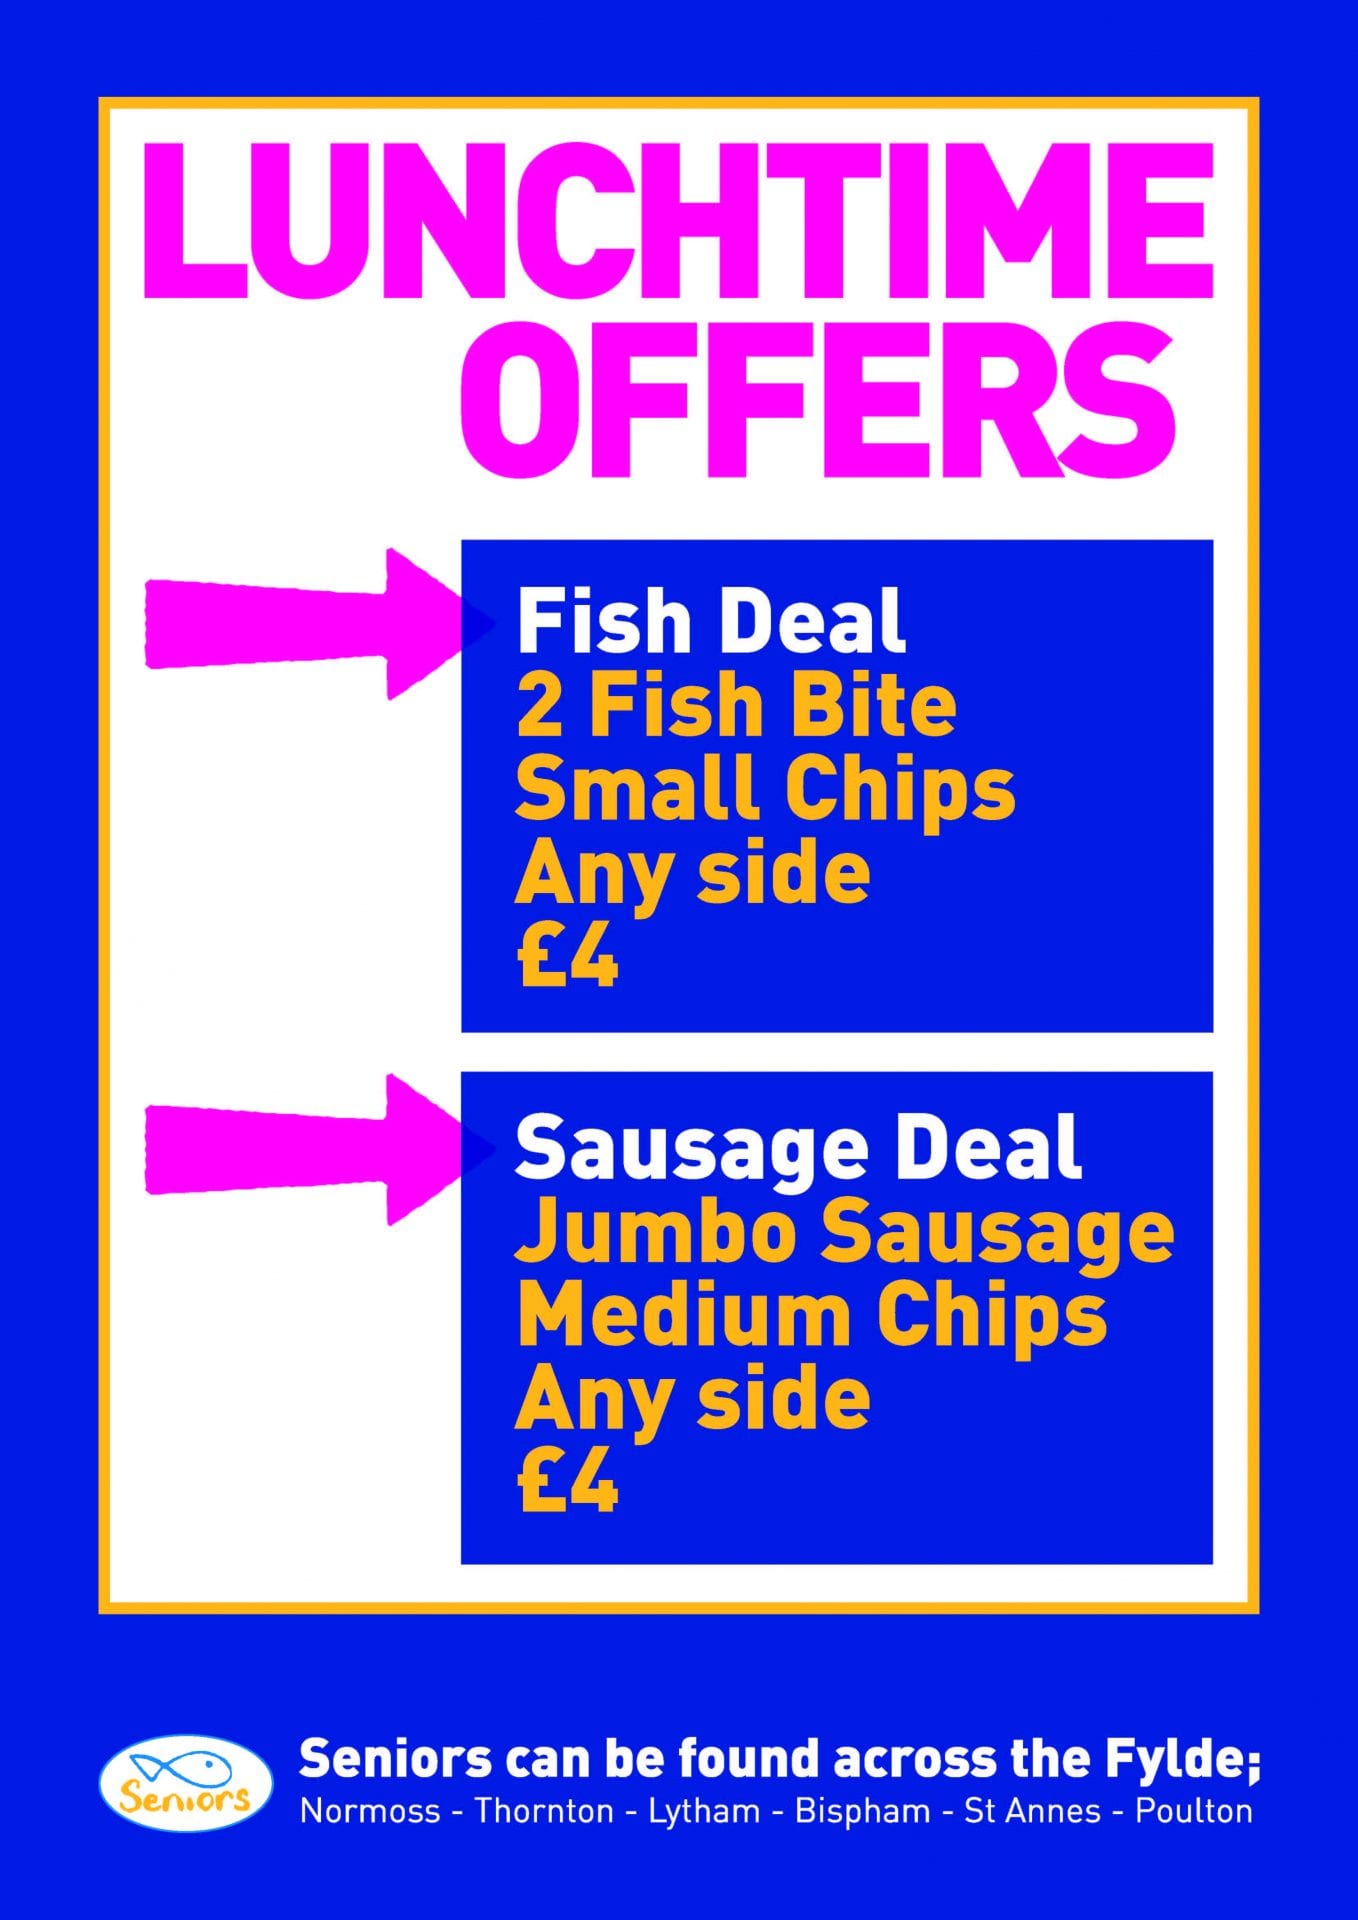 Lunchtime Offers at Seniors fish and chips